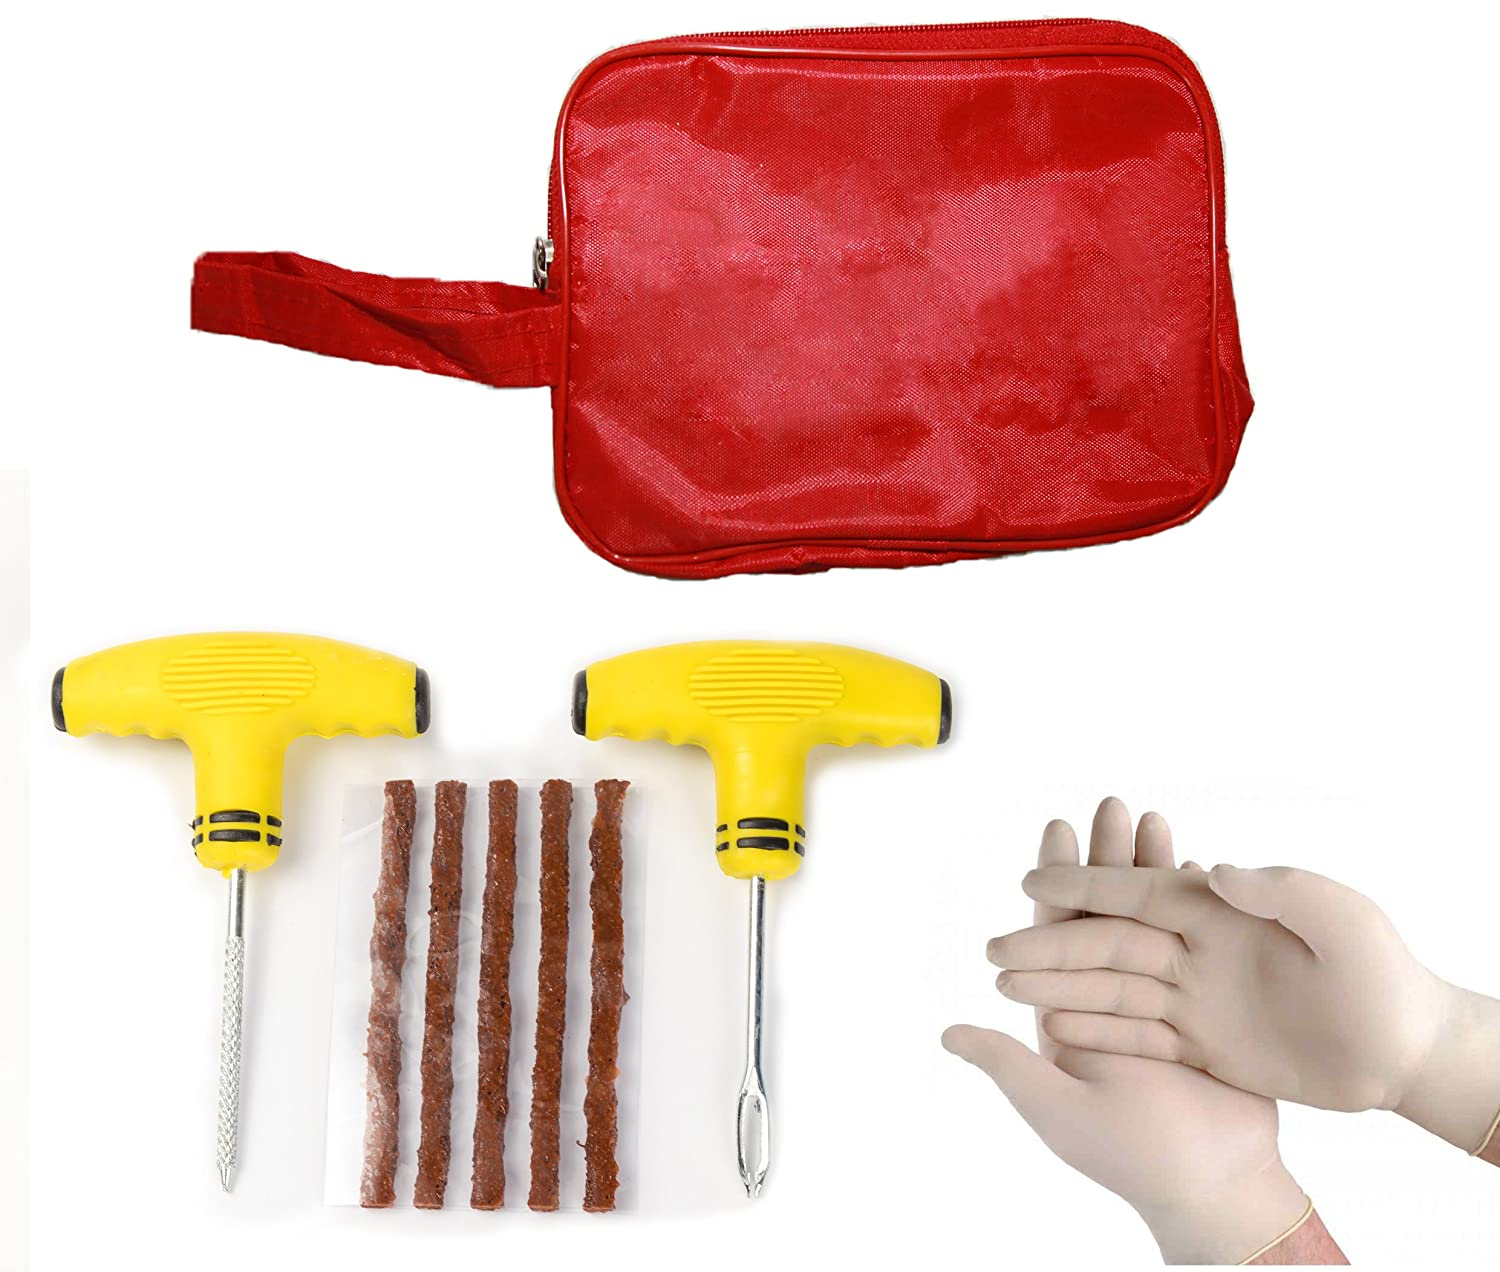 TYRE DOCTOR  ® TYRE PUNCTURE REPAIR KIT WITH SOFT HANDLE TOOLS TYRE DOCTOR ® .